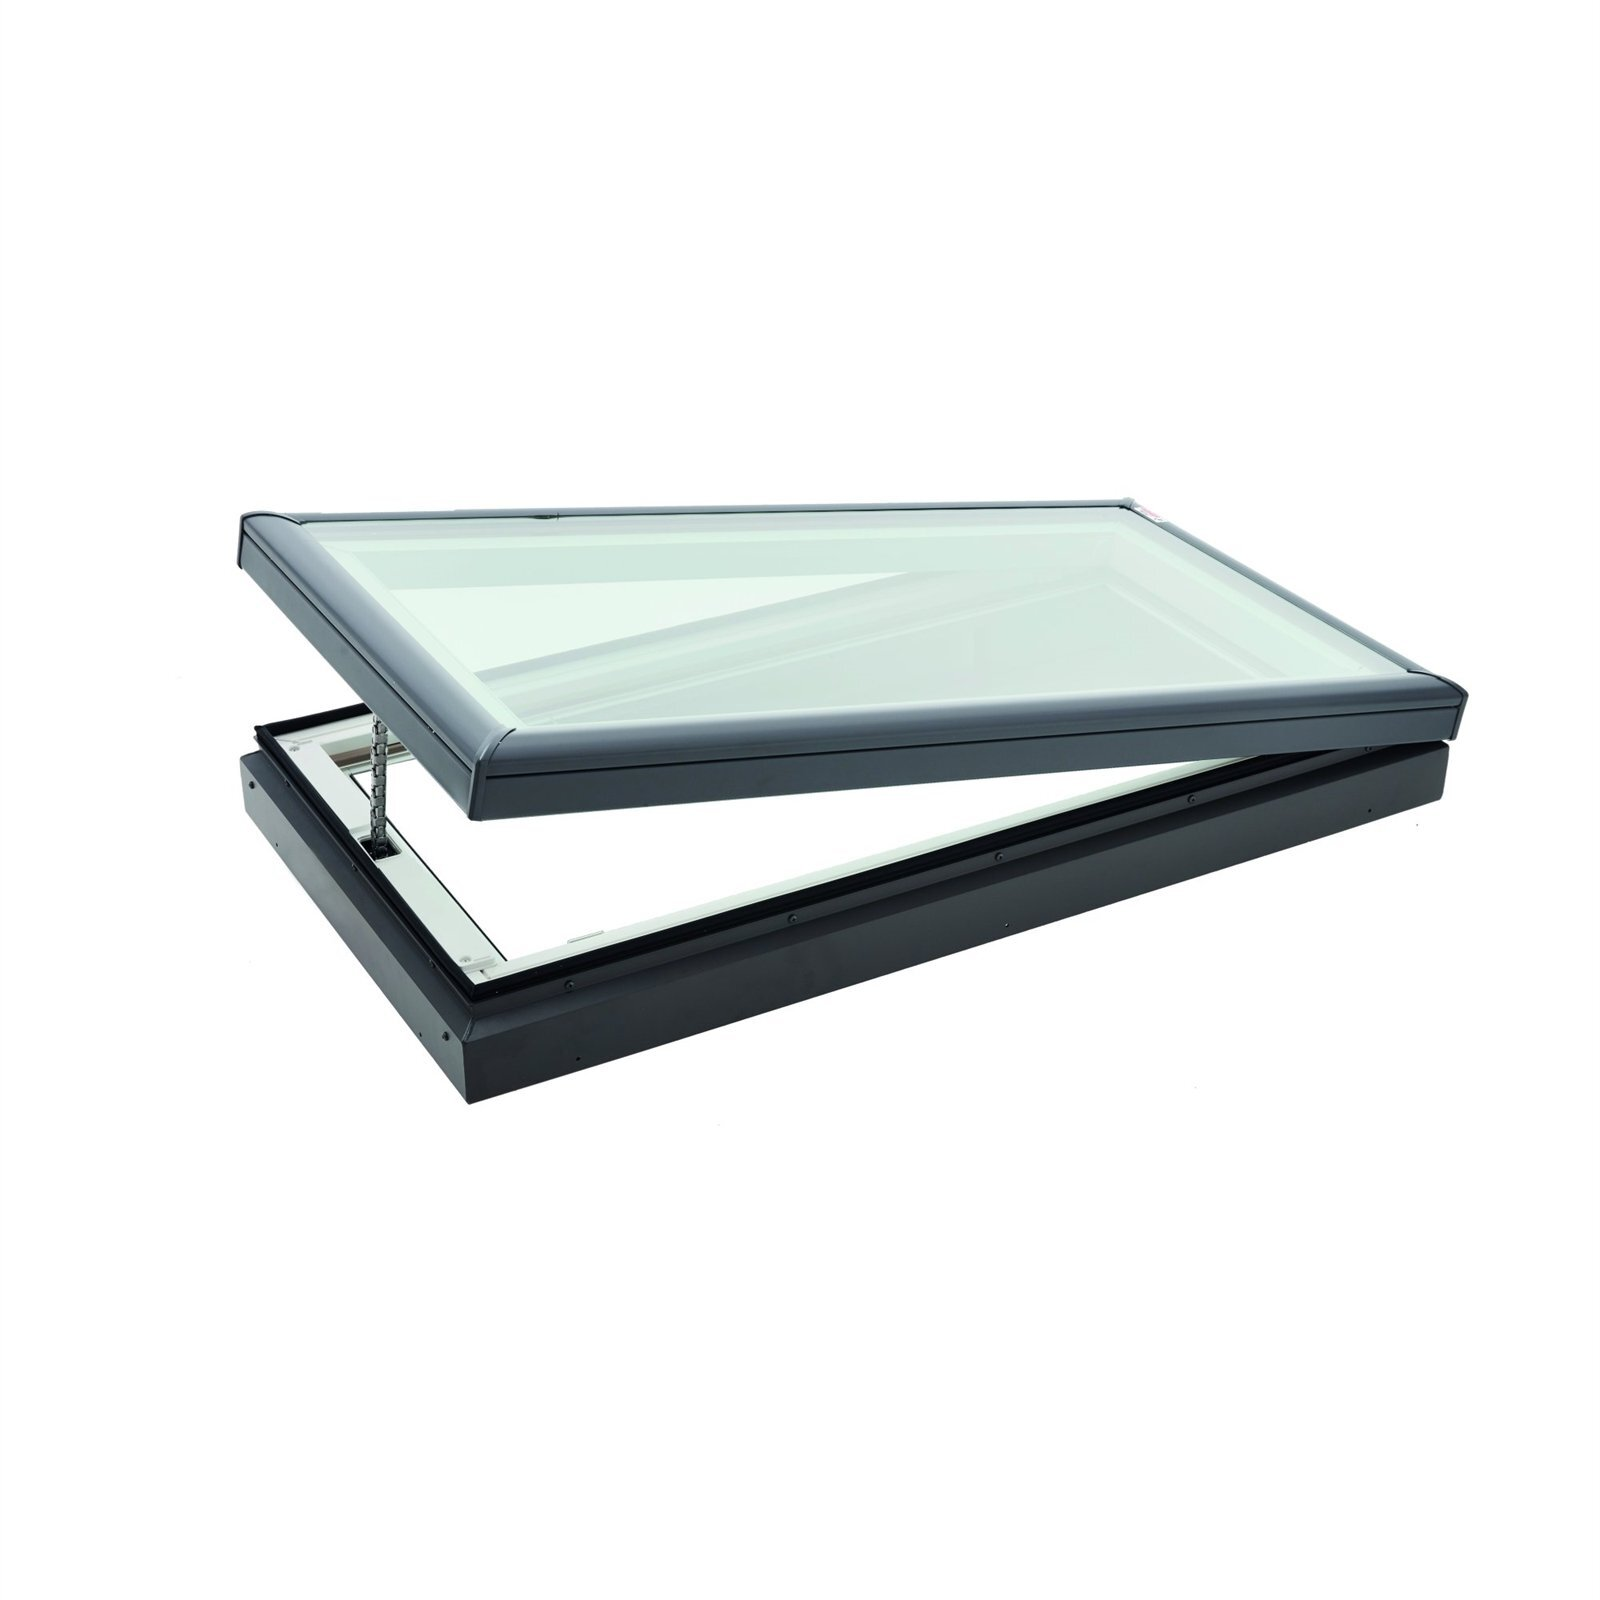 VELUX 895 x 1302mm Low Pitch Manual Opening Skylight